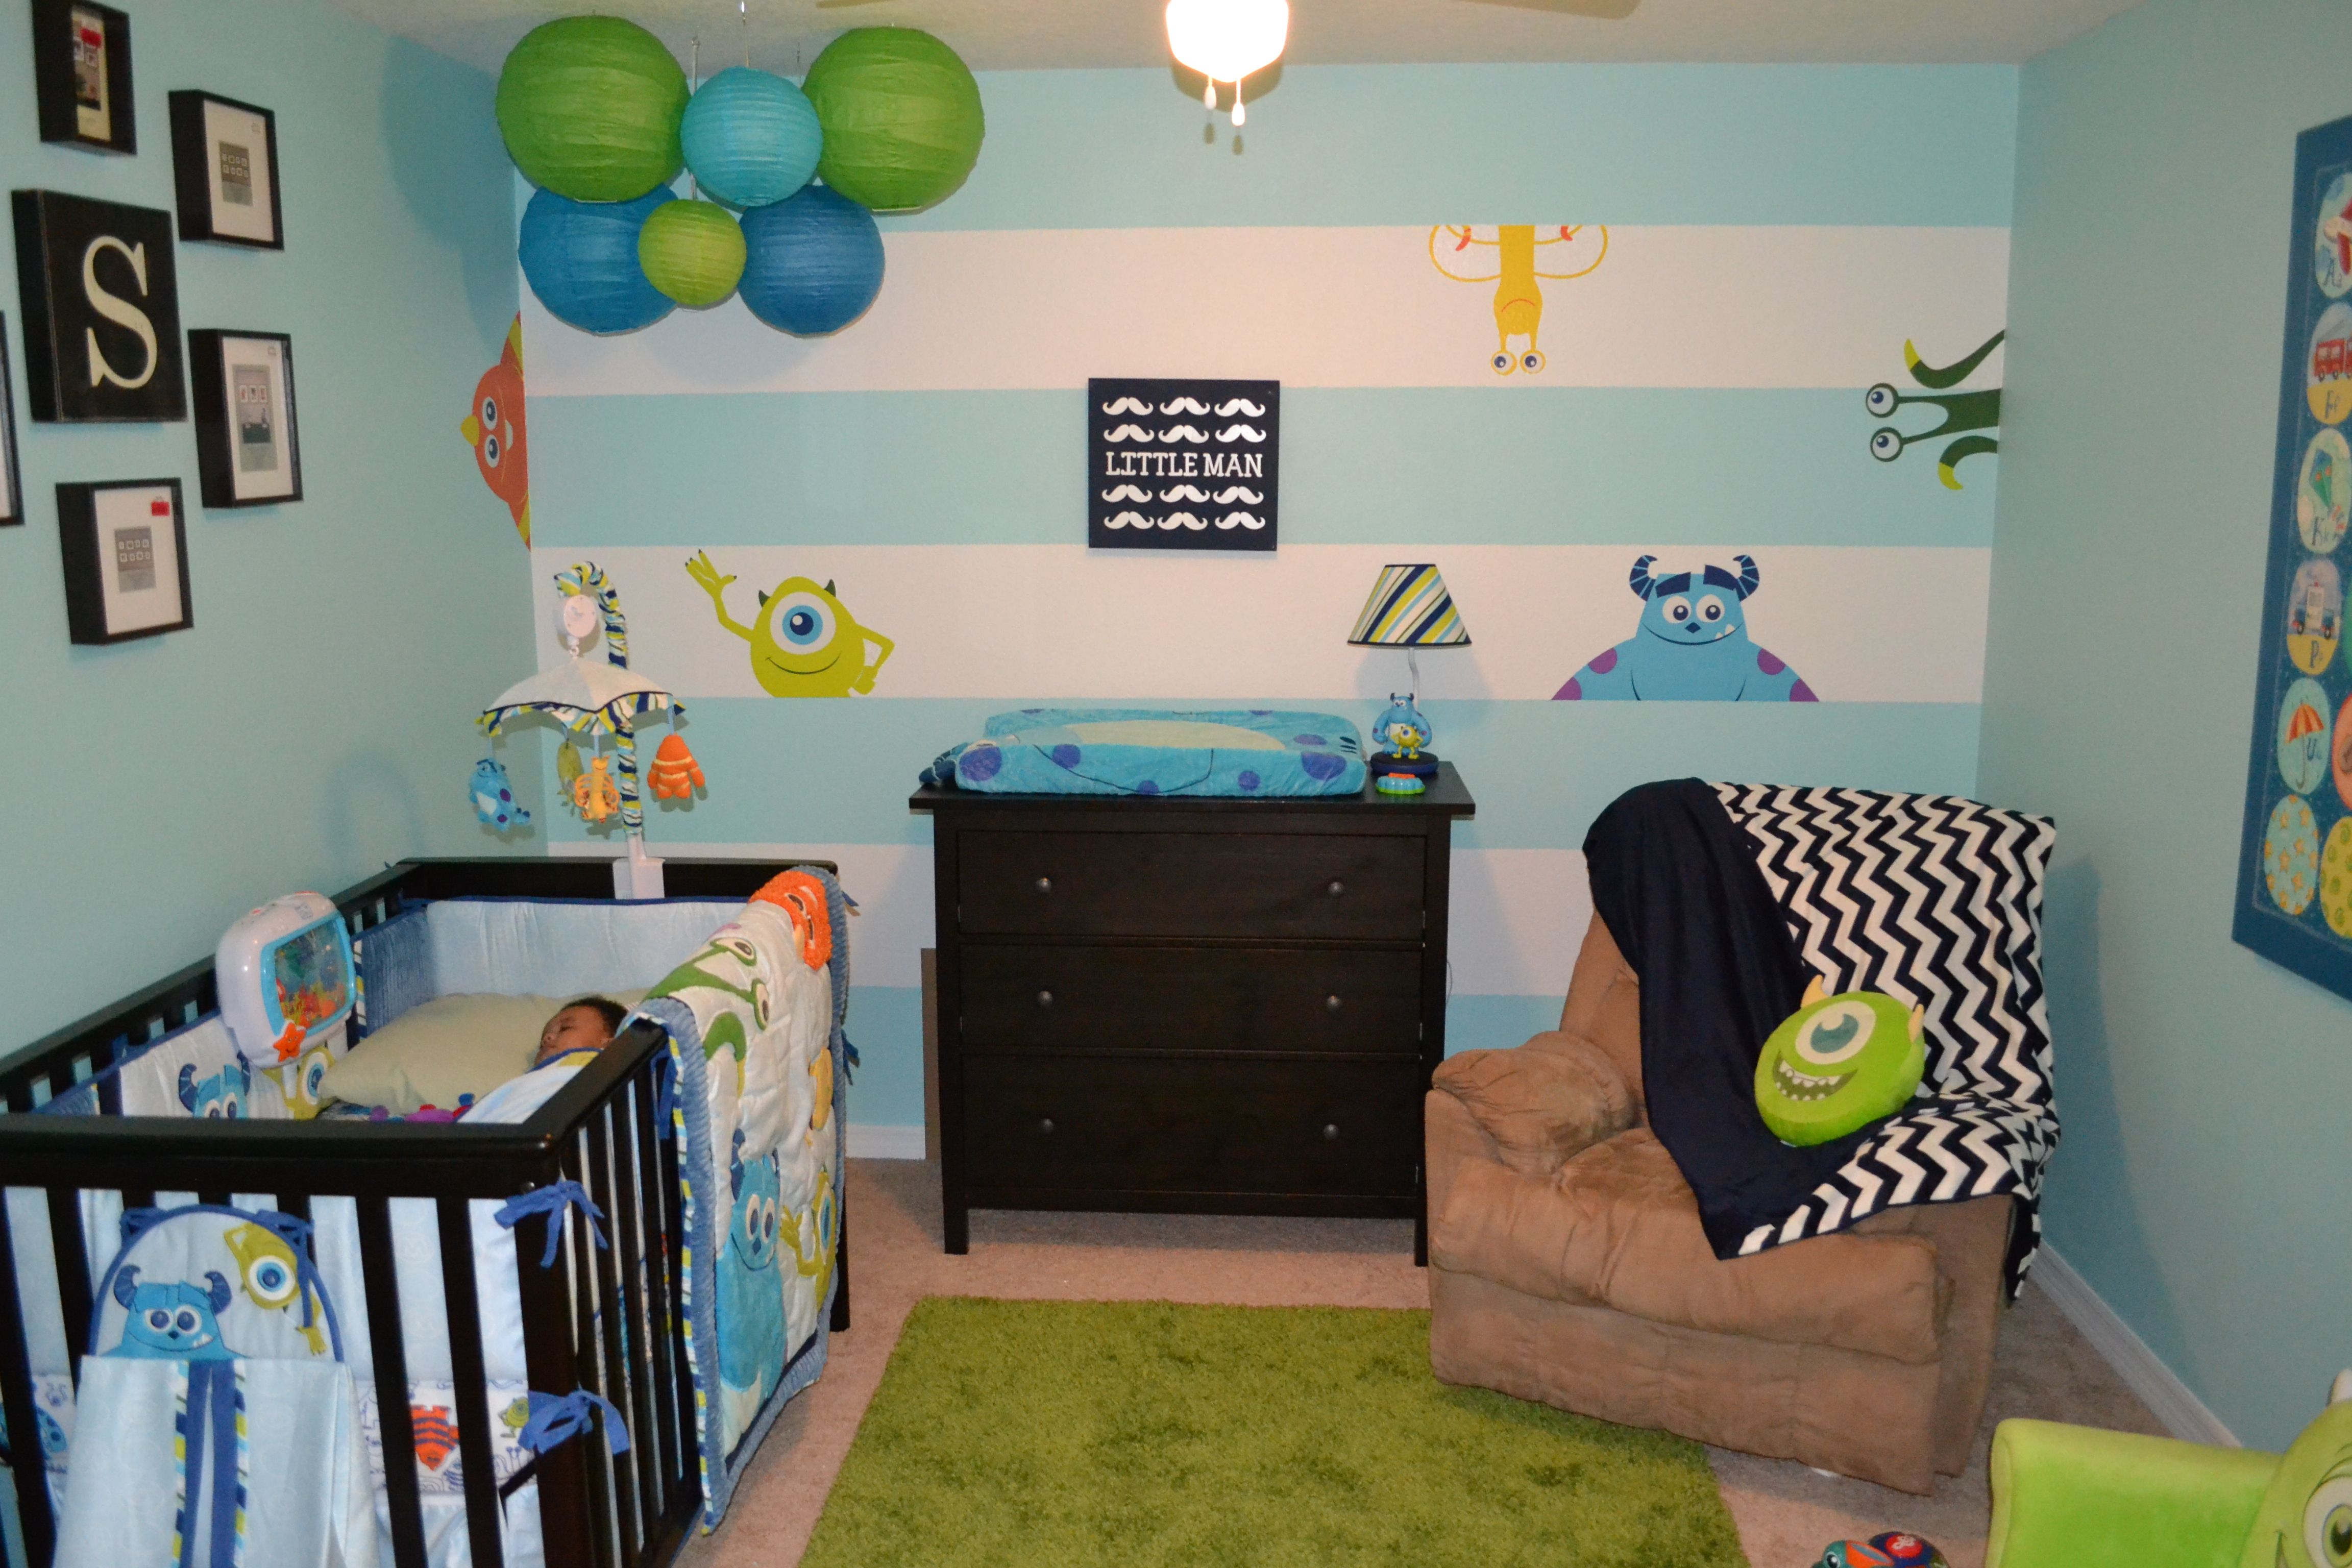 My Own Son S Room Monsters Inc I Absolutely Love How It Turned Out The Colors Really Pop